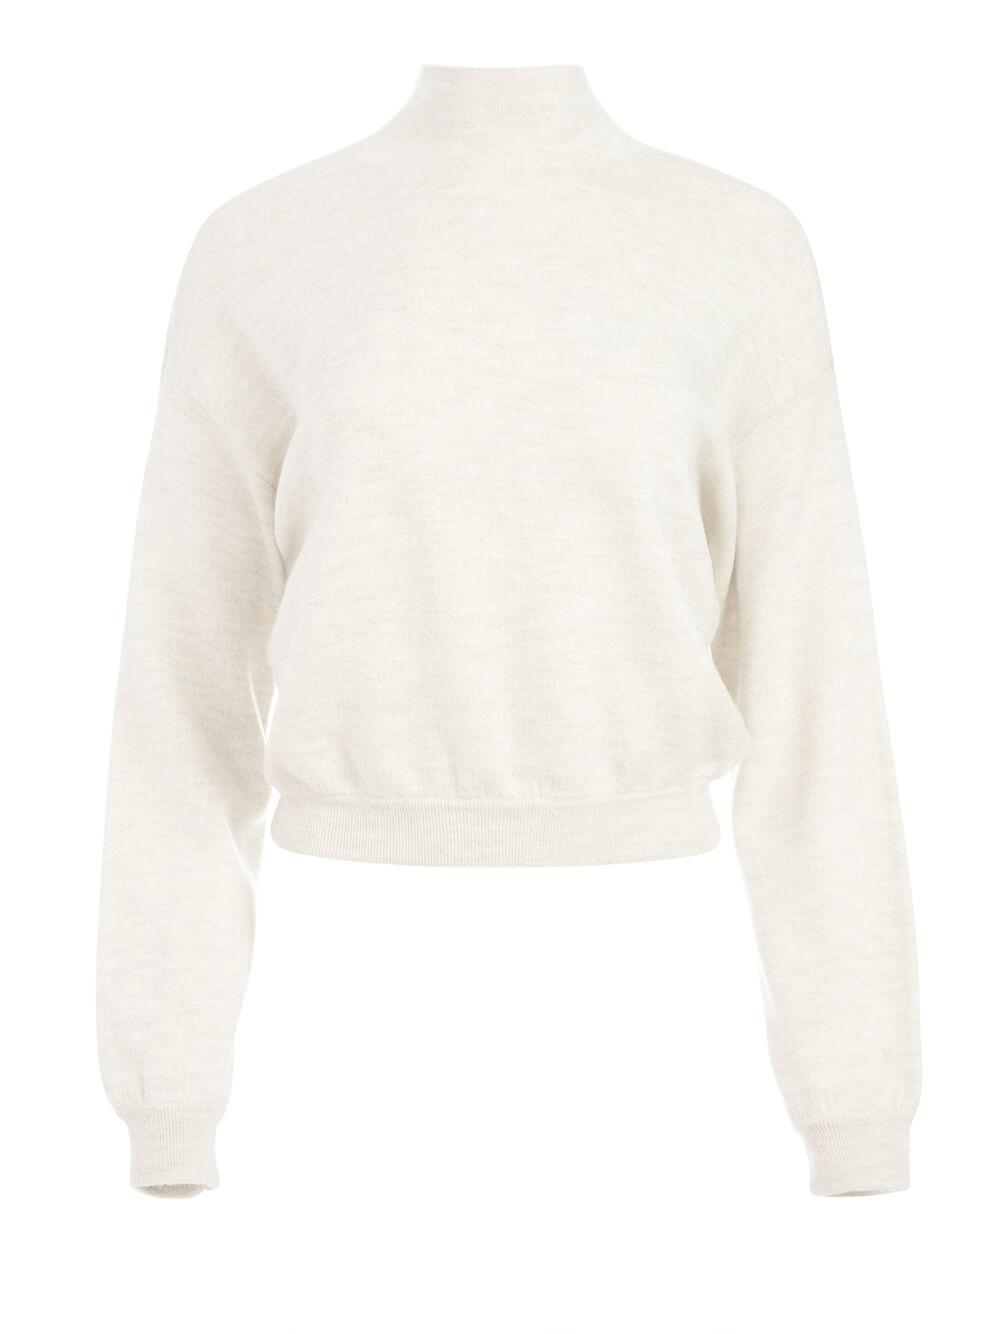 Mattie Blouson Sweater